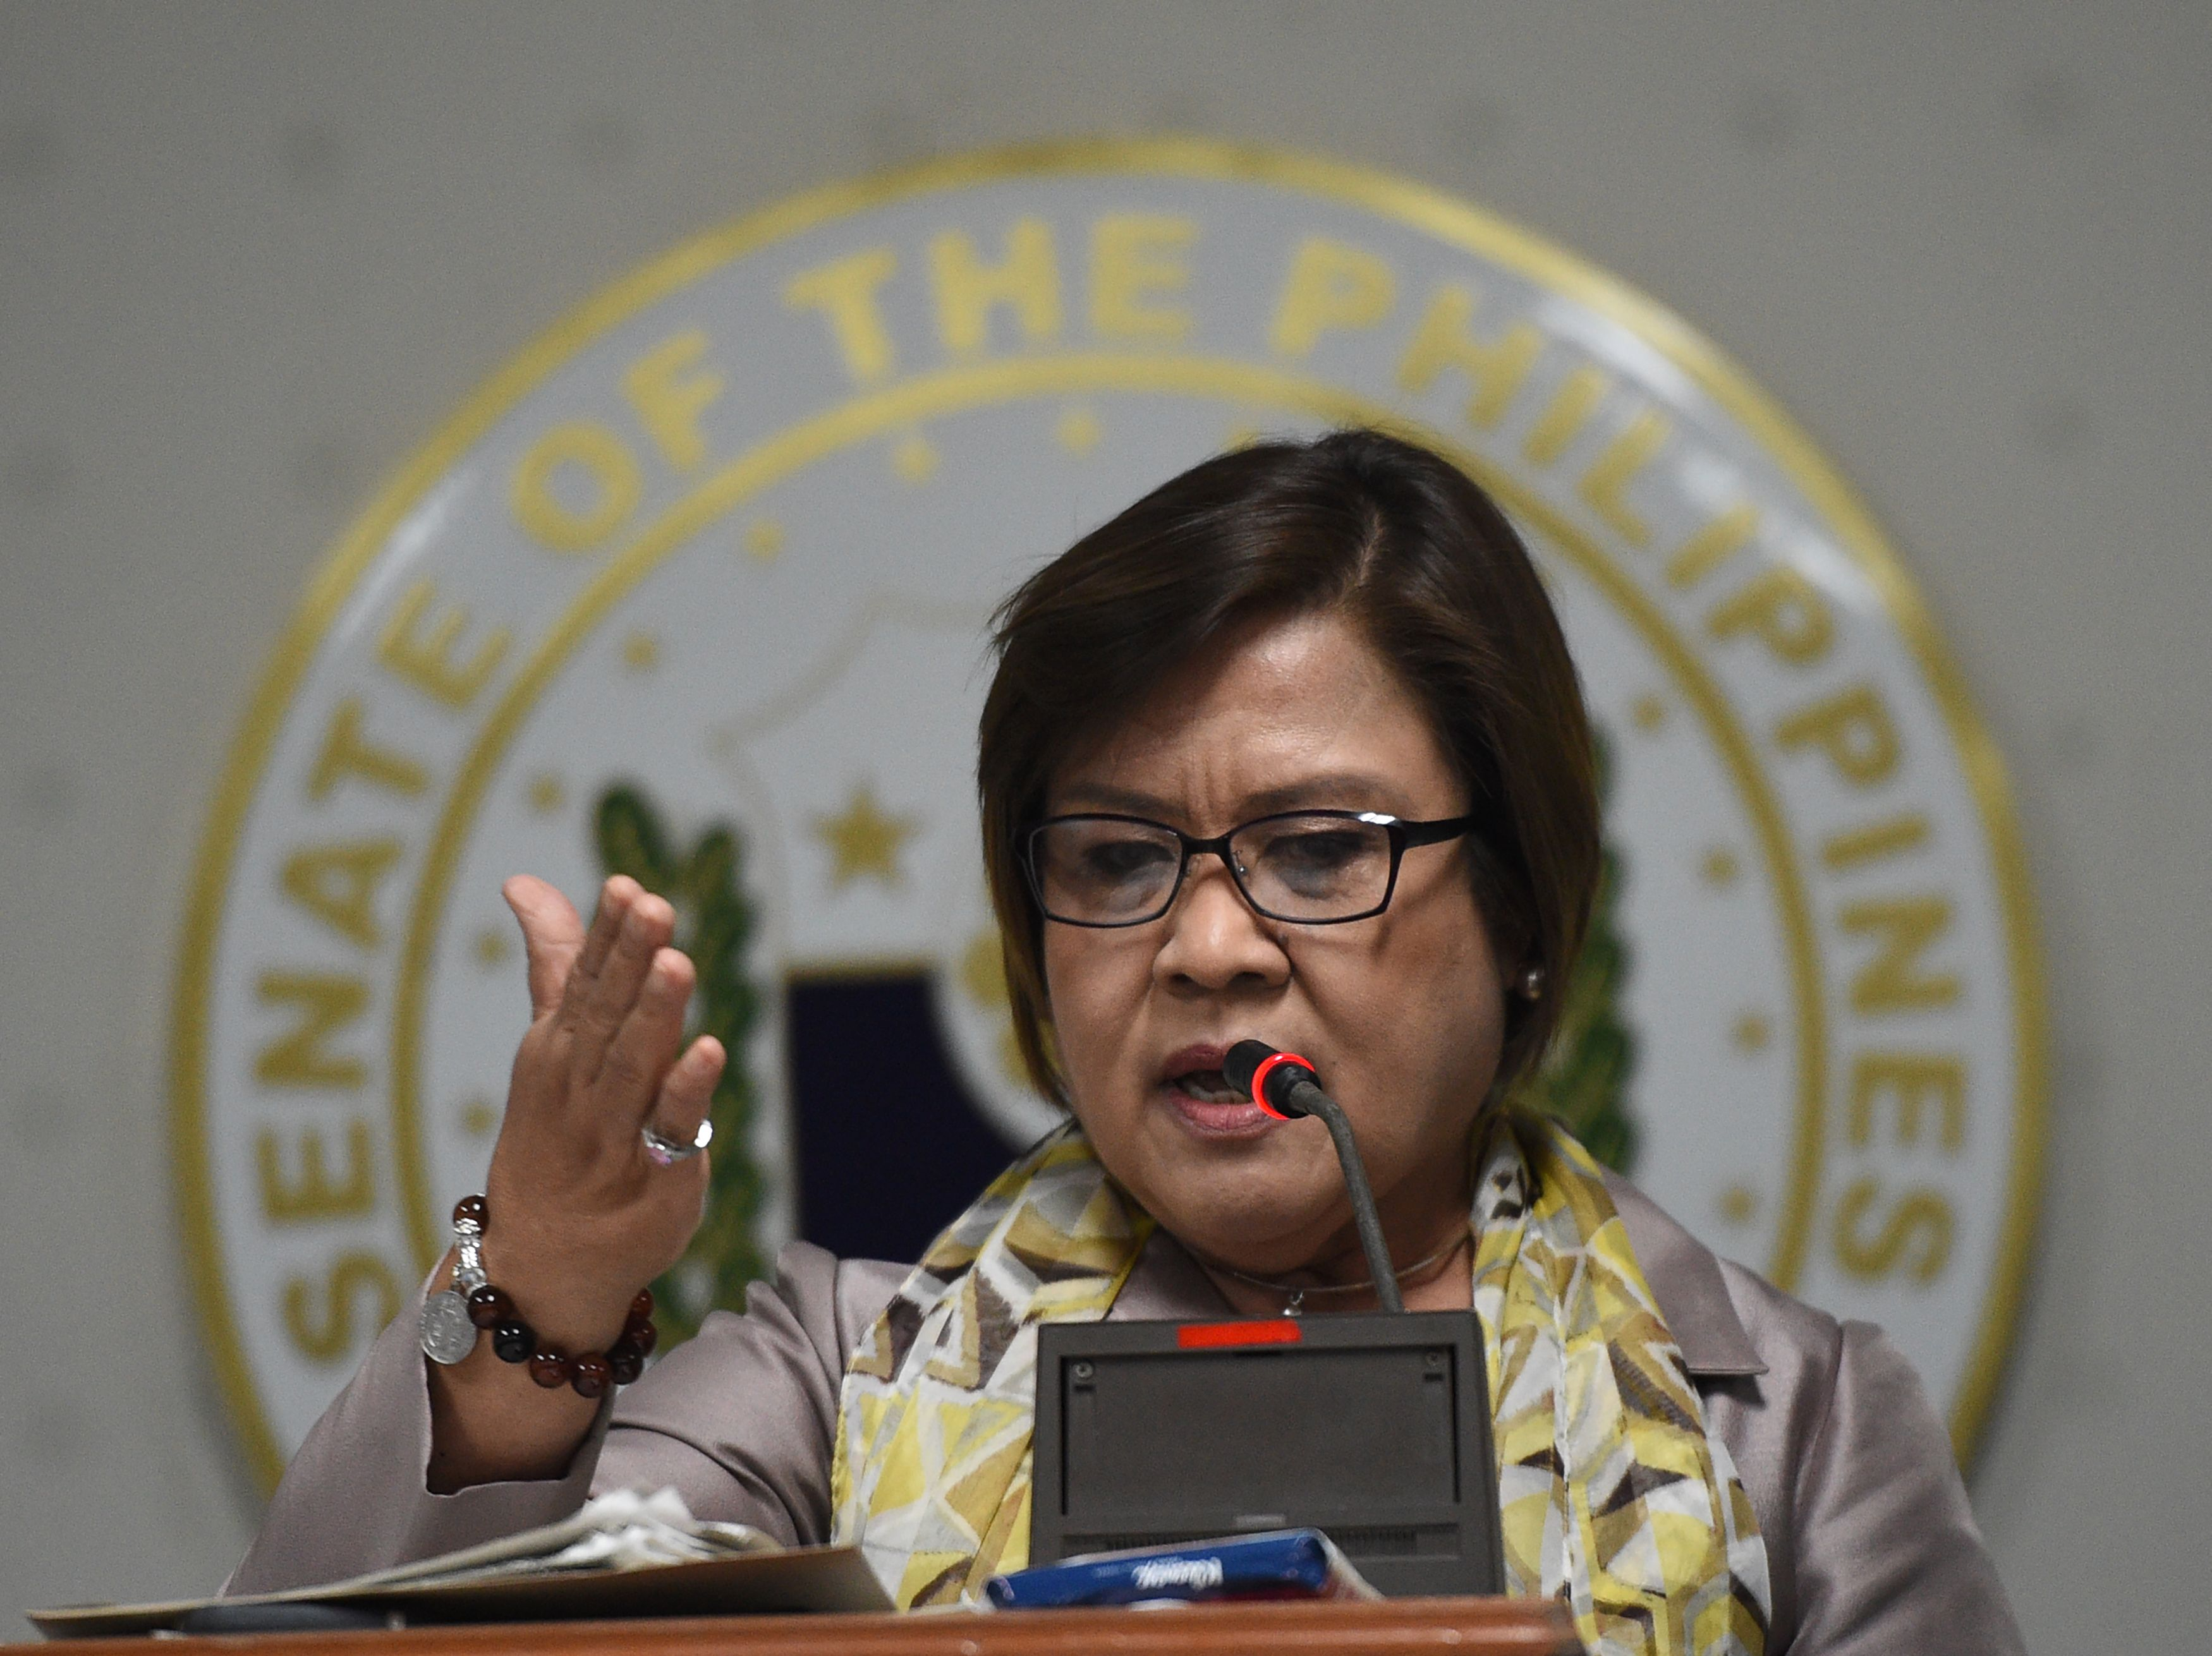 Philippine Senator Leila de Lima during a press conference at the Senate in Manila on Sept. 22, 2016